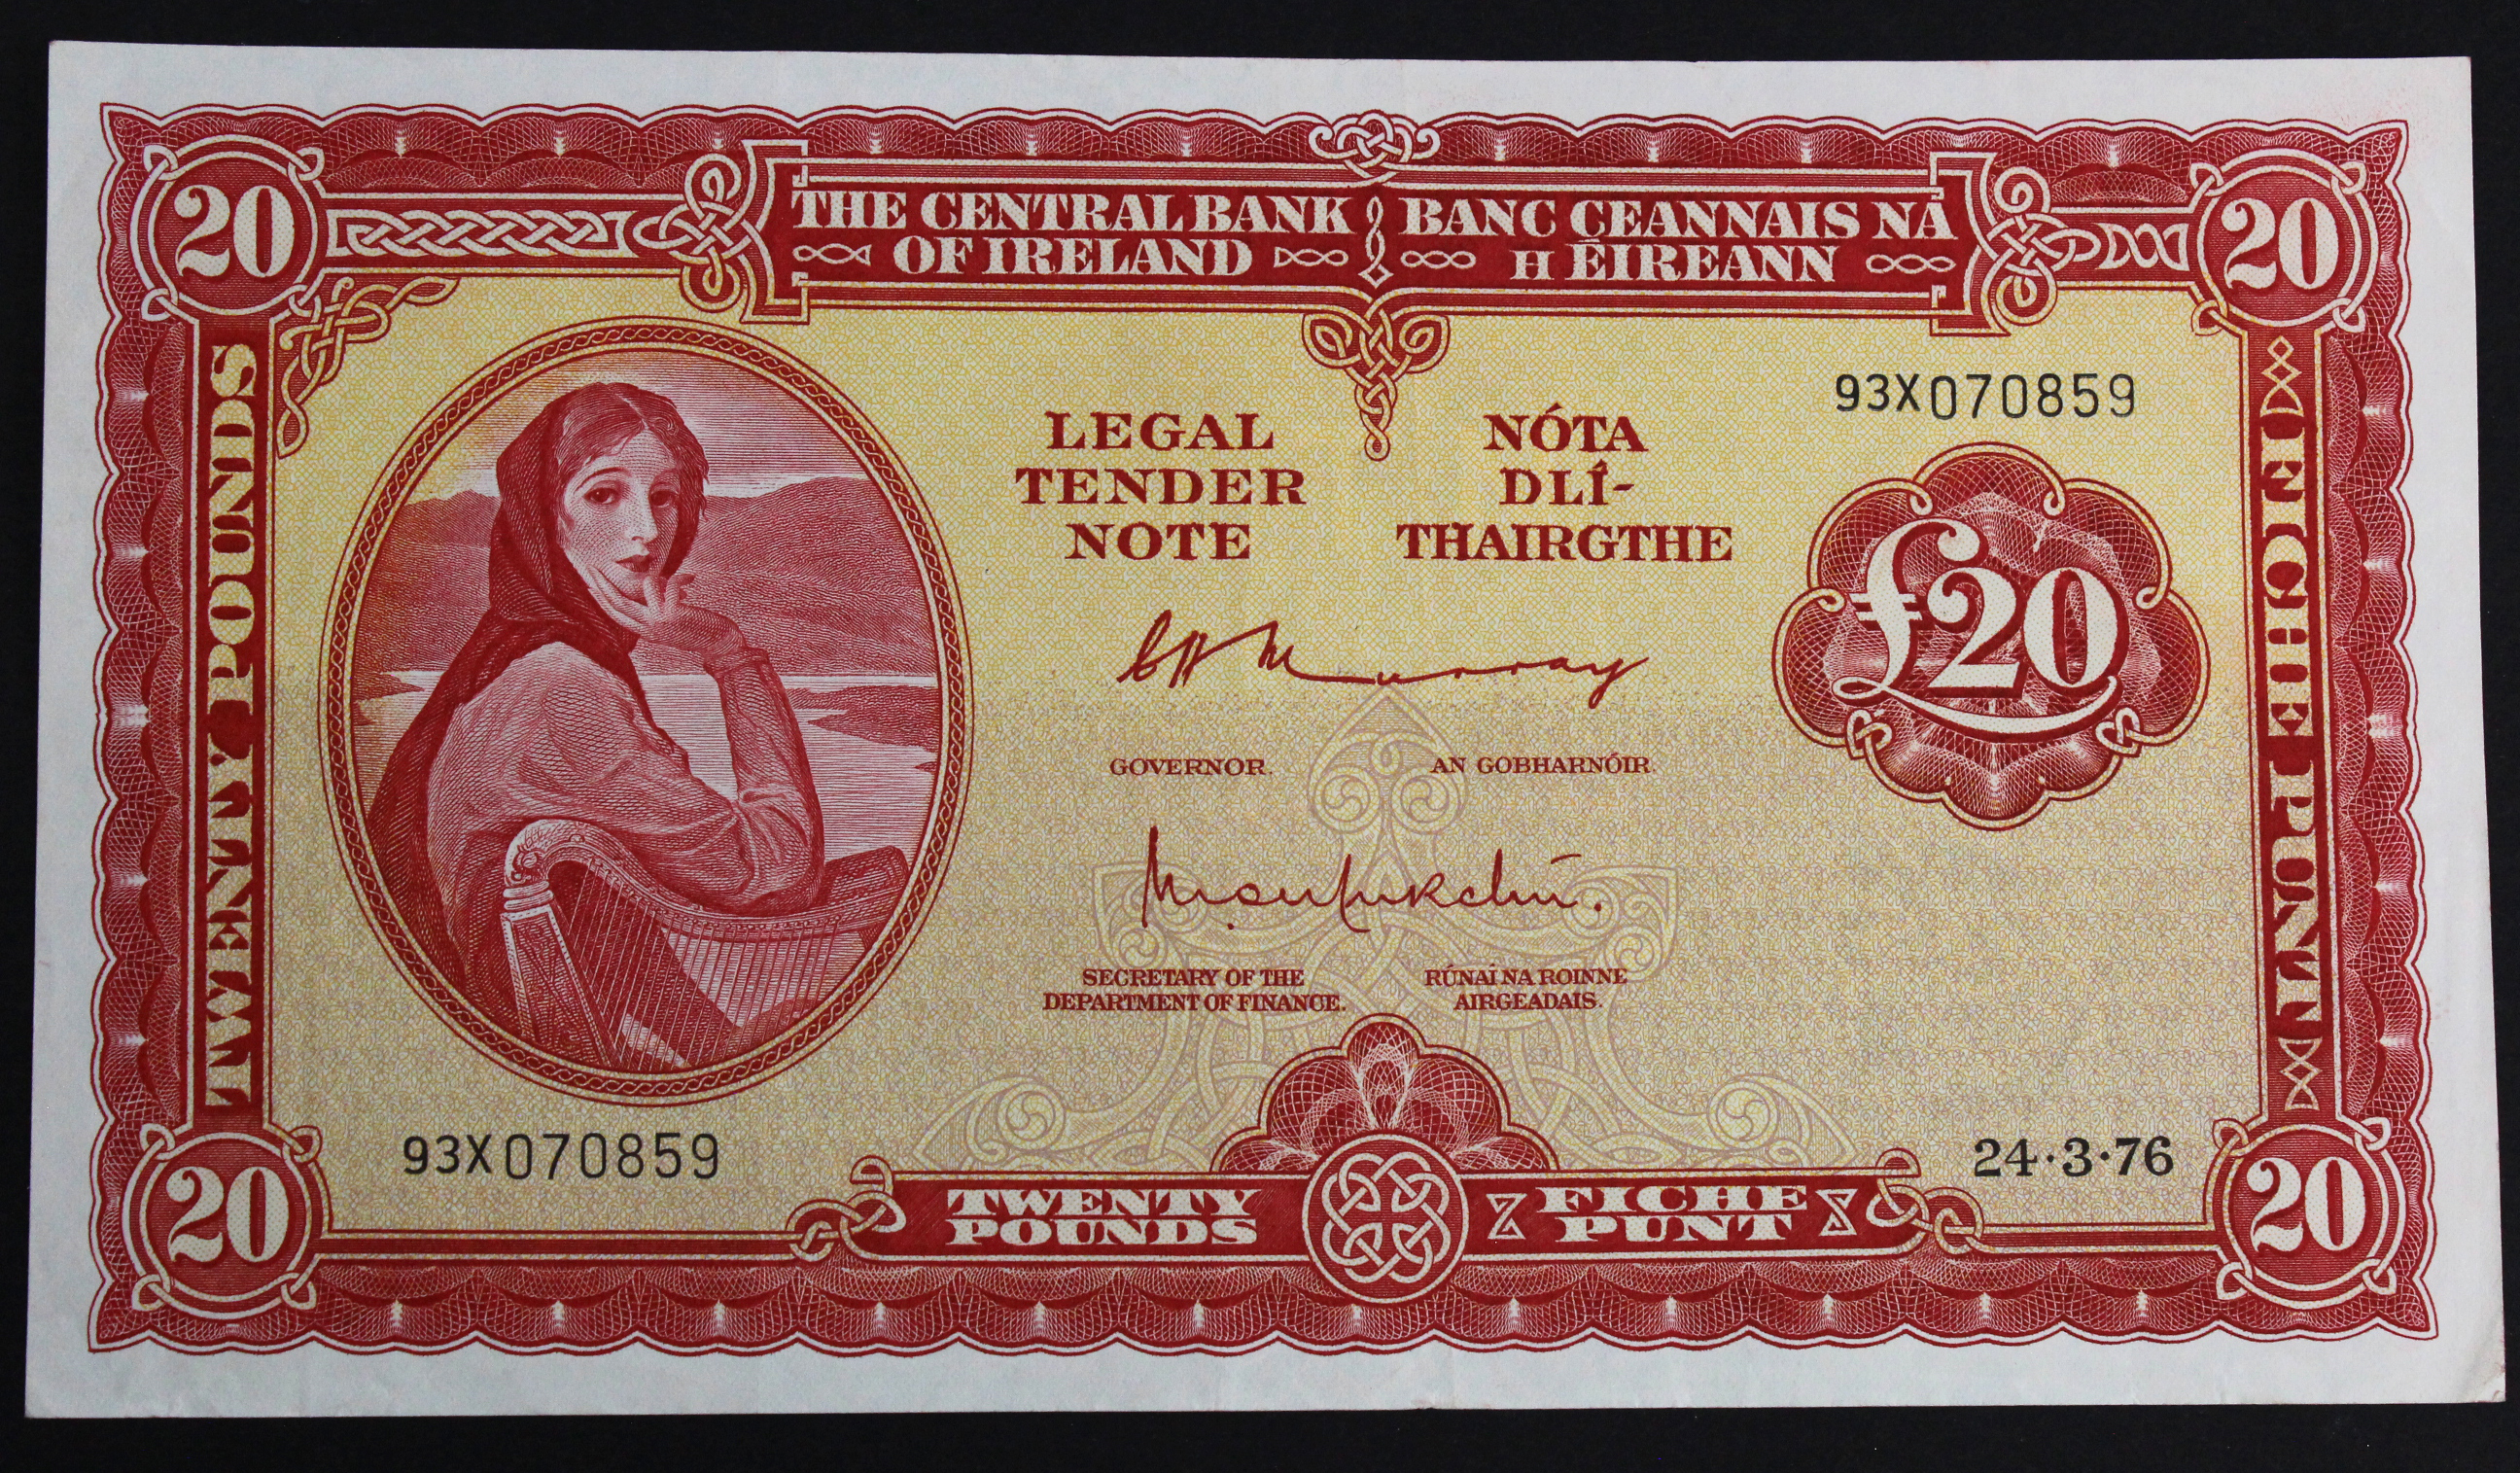 Ireland Republic 20 Pounds dated 24th March 1976, last date of issue, Lady Lavery portrait at